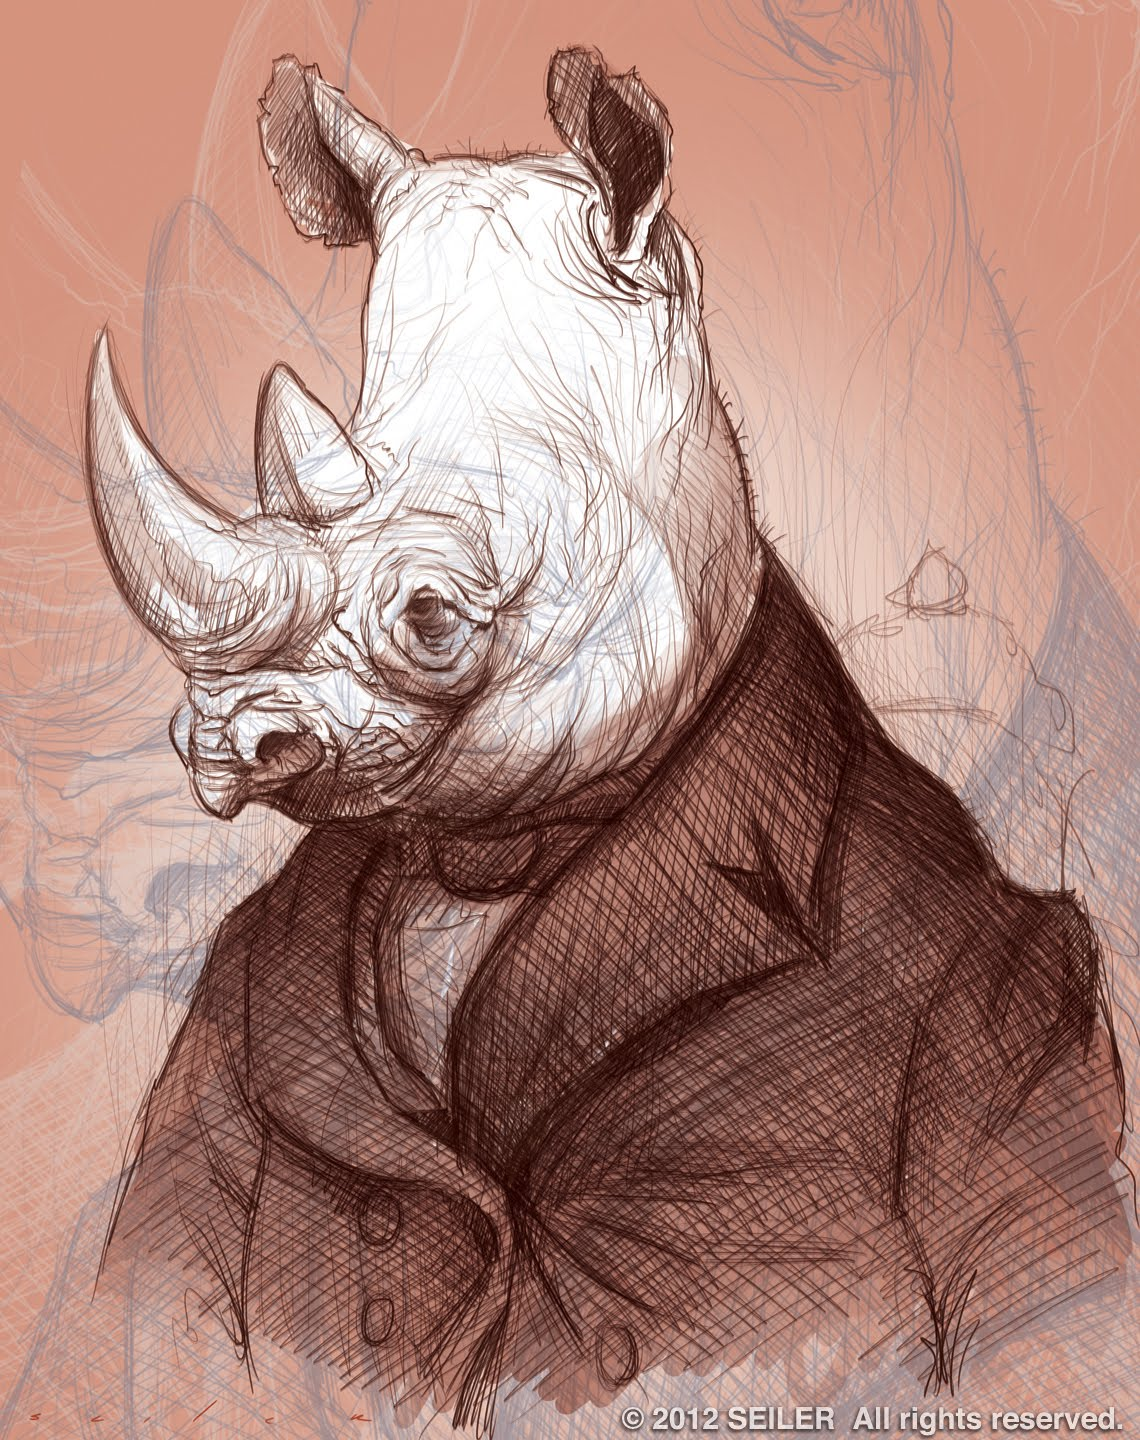 Drawn rhino absurd Search Pinterest Google characters characters